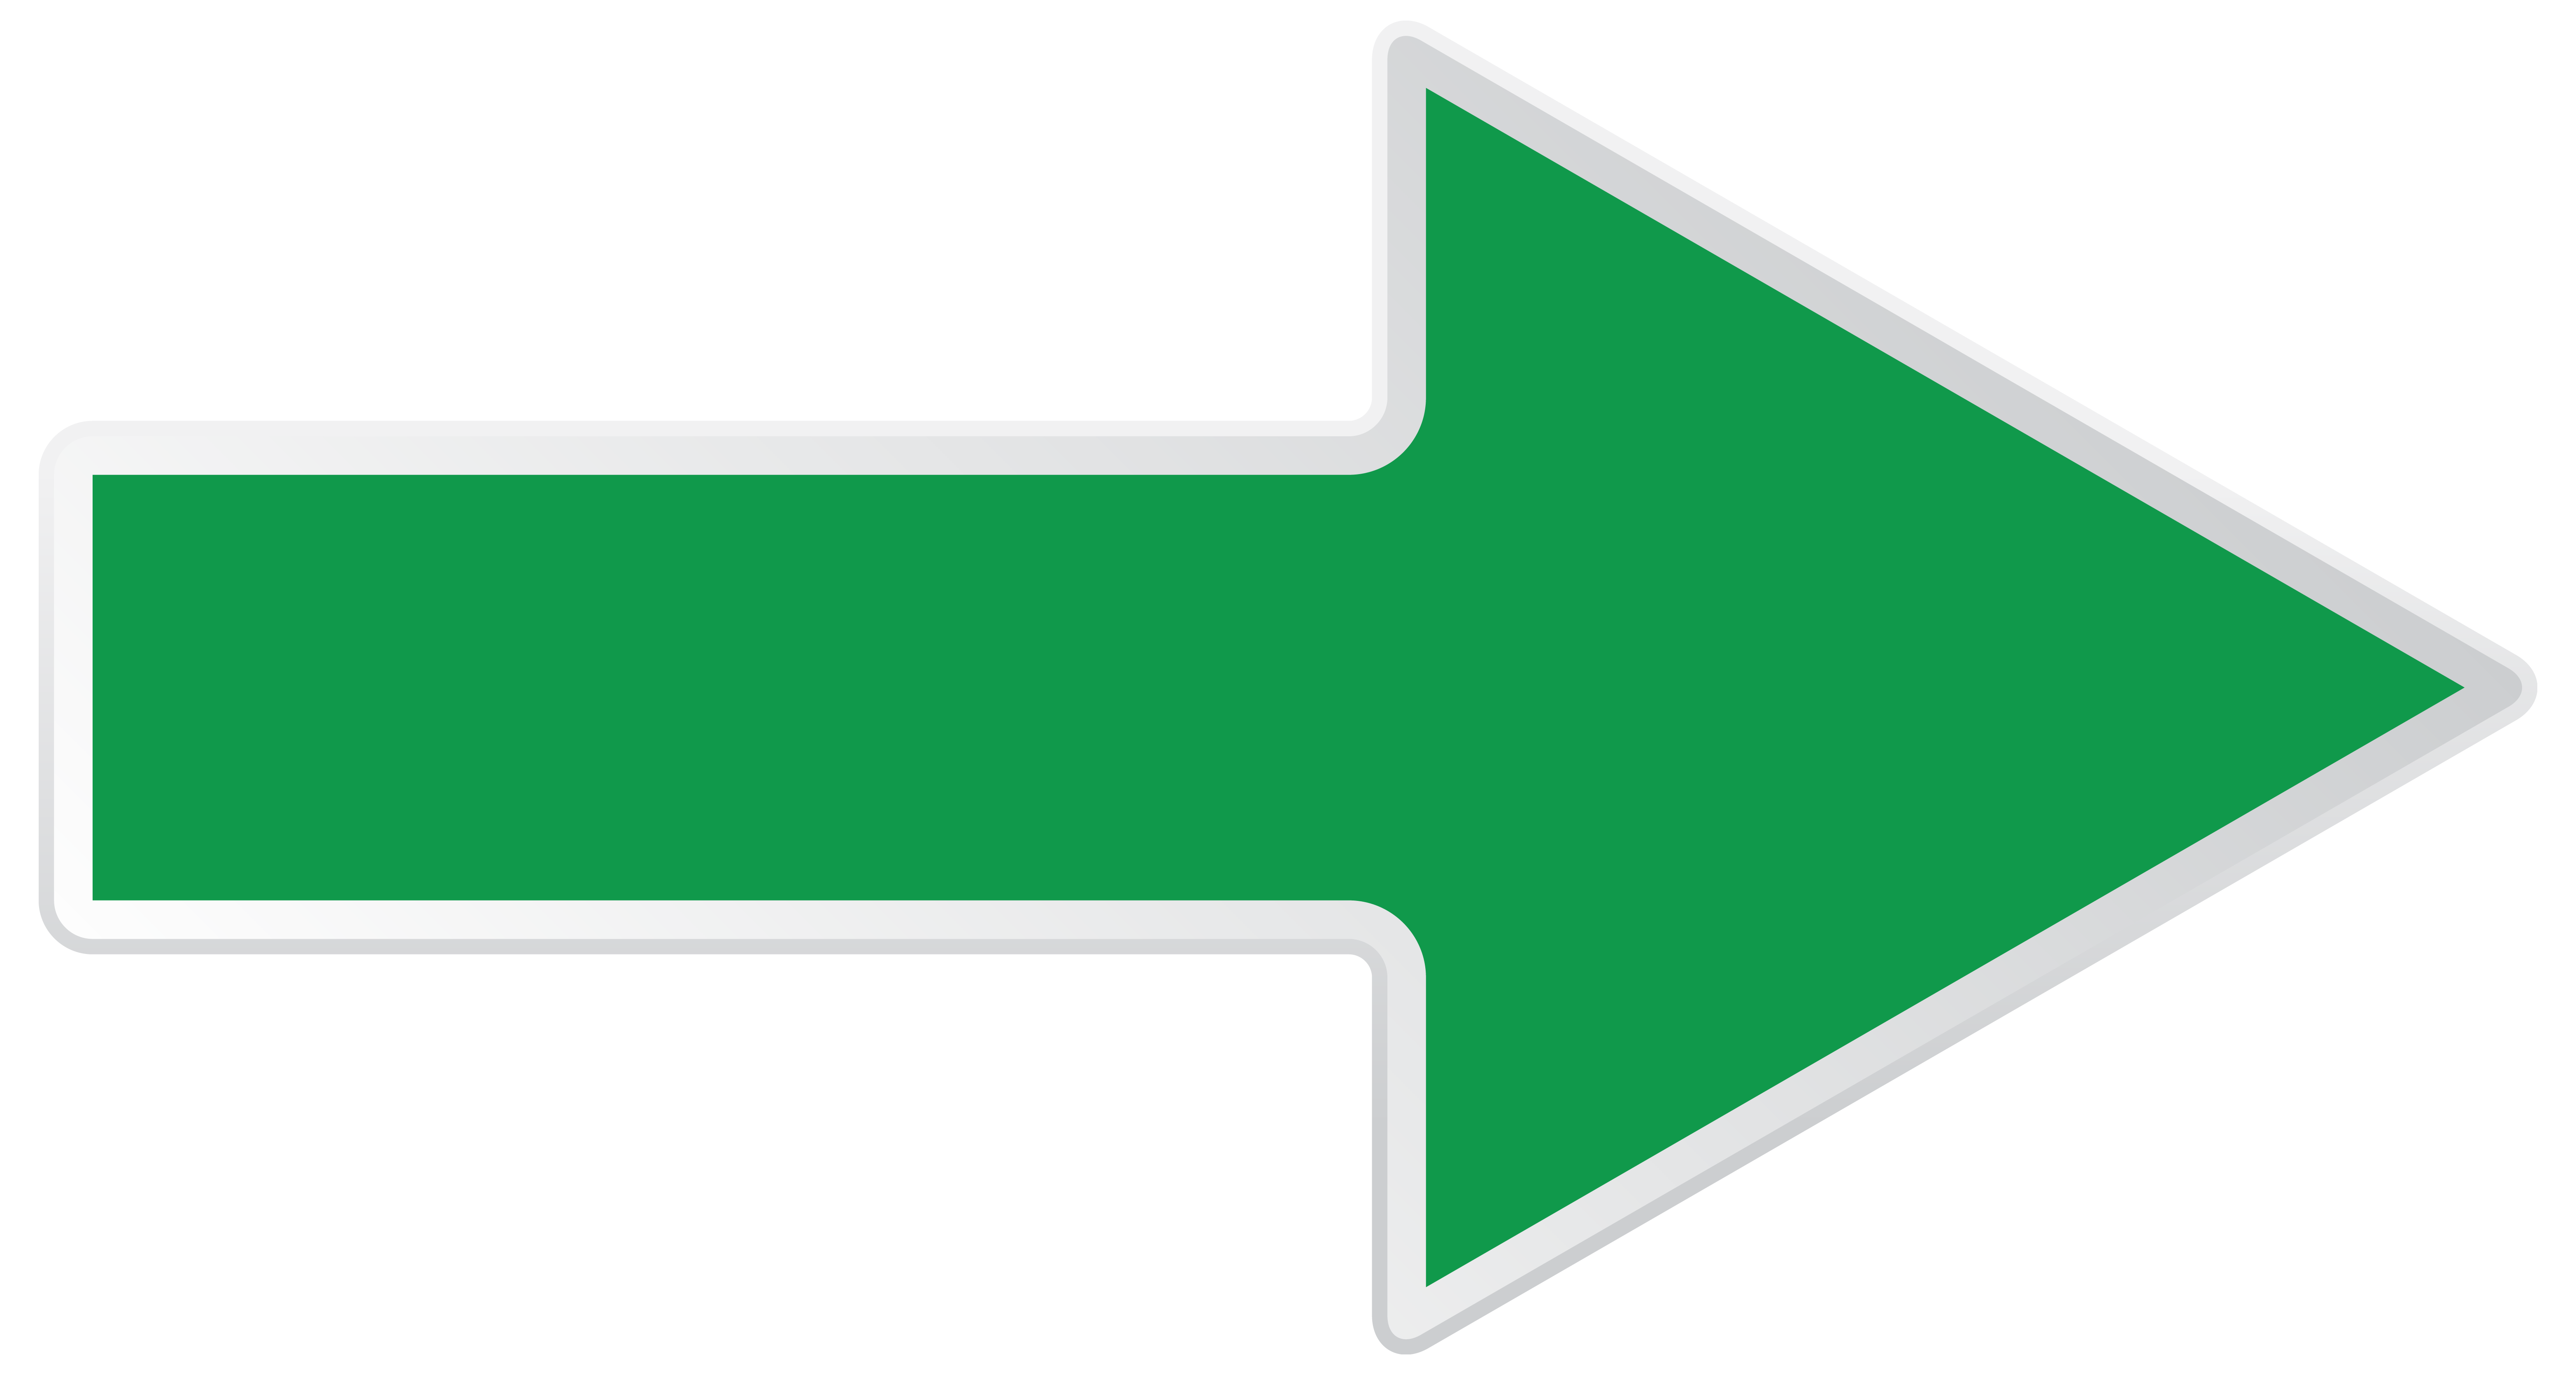 Right Arrow Image Clipart | Free download on ClipArtMag